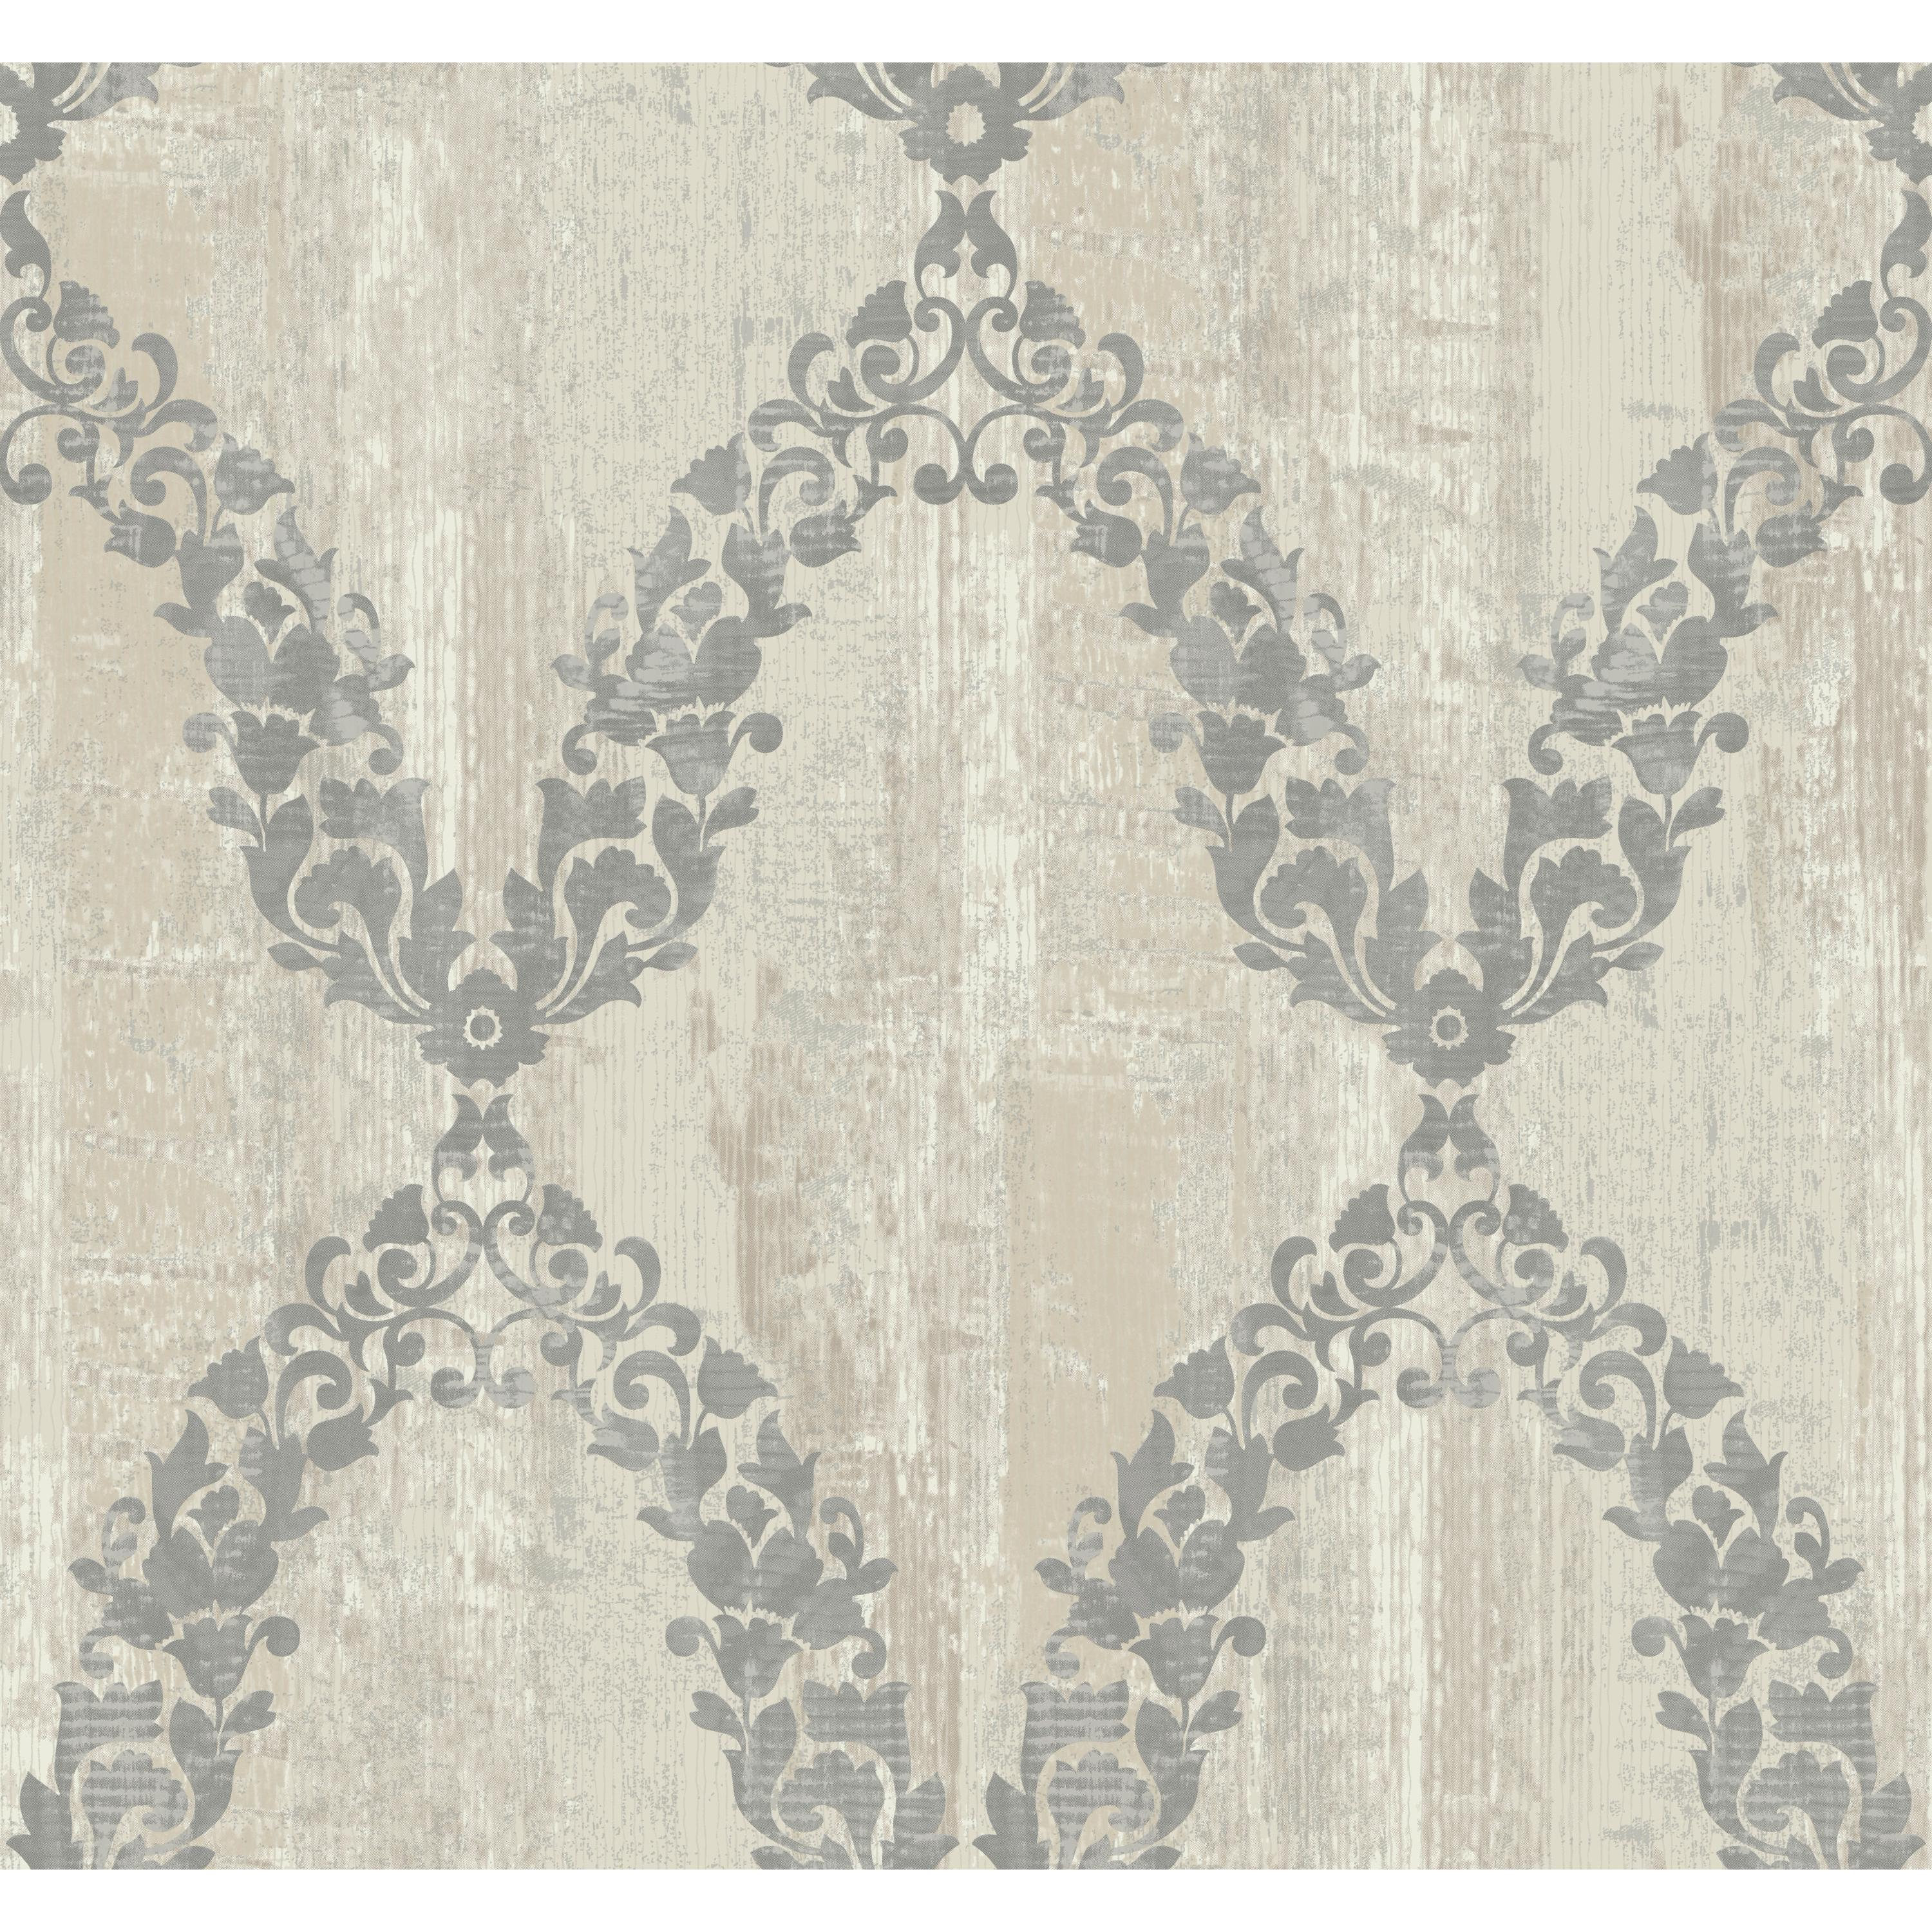 Fells Point Garland Trellis Wallpaper